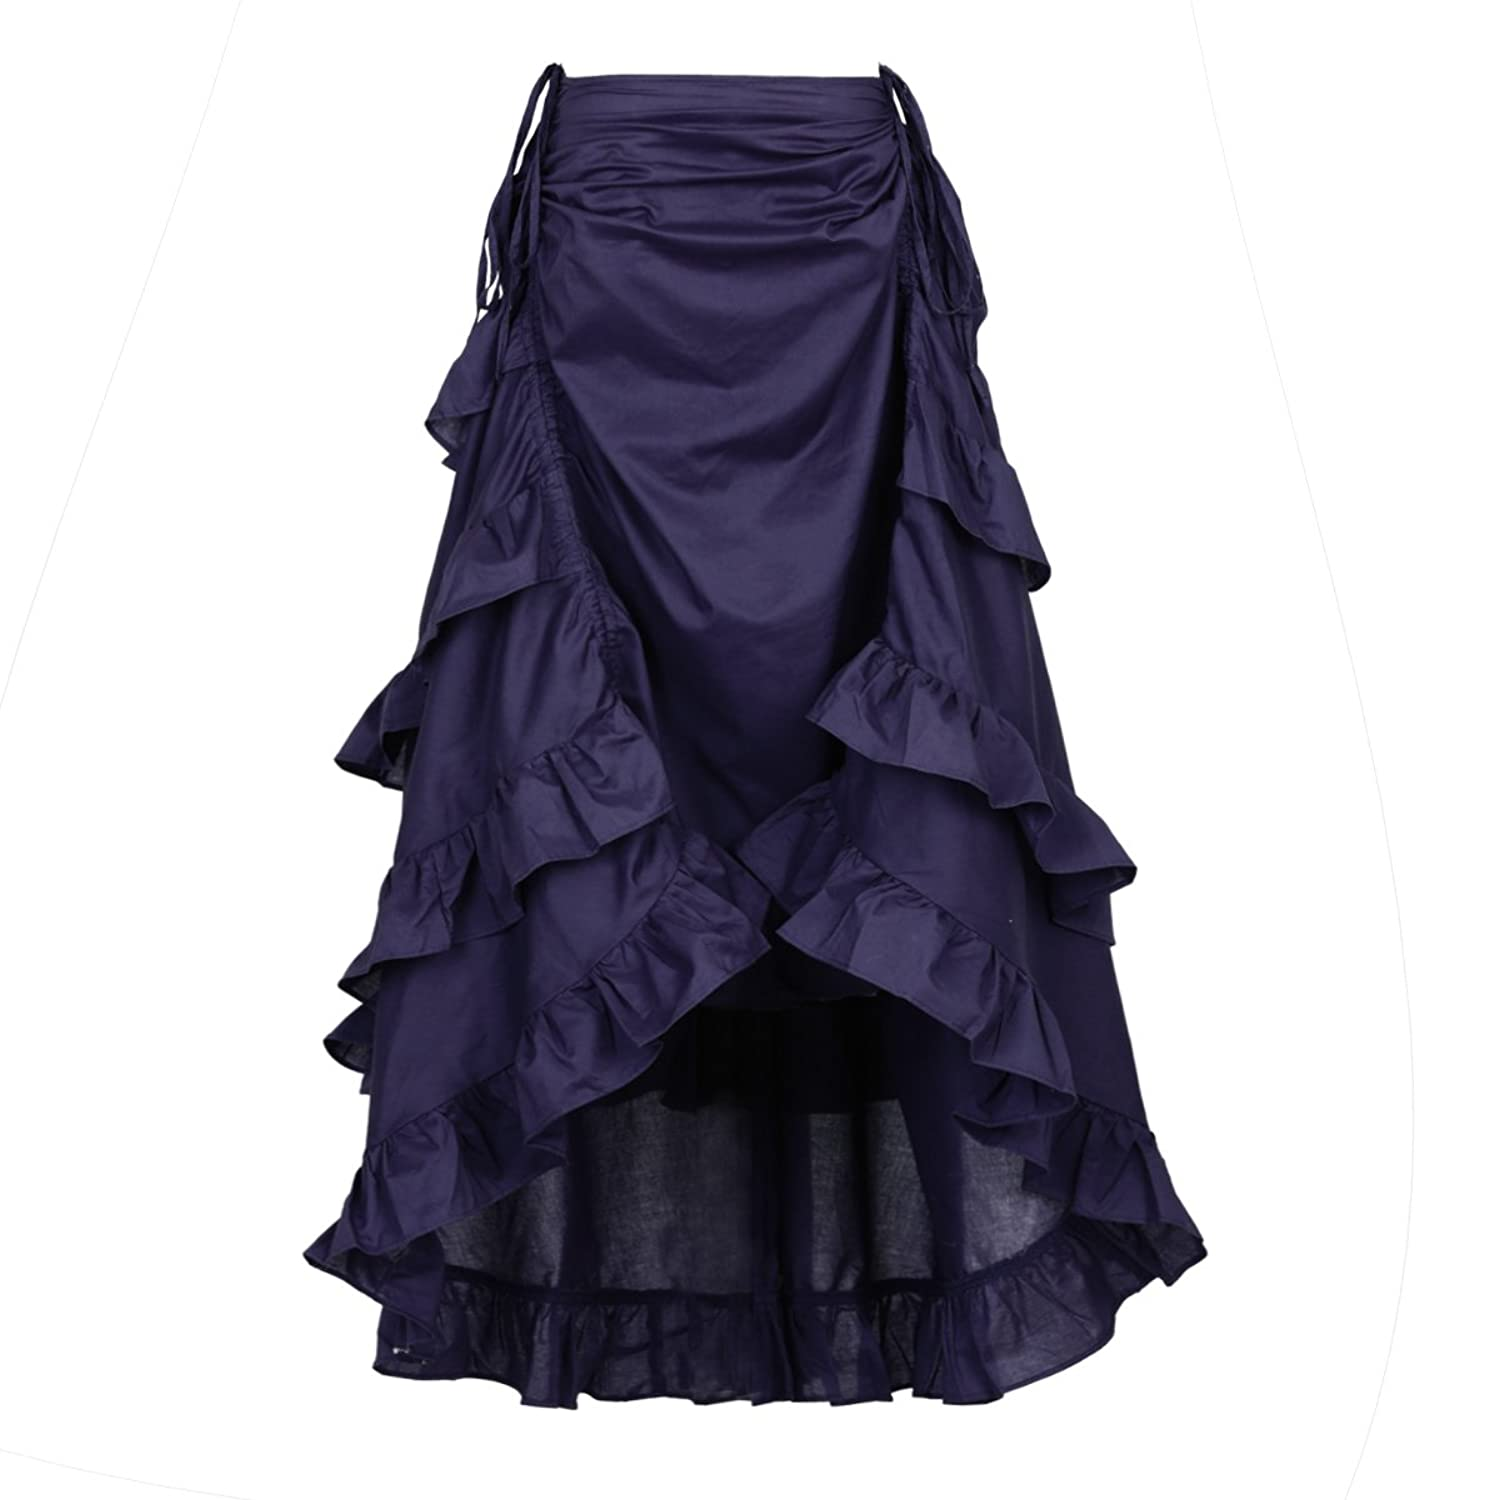 Steampunk Costume Essentials for Women NIGHT BUTTERFLY Womens Costume Steampunk Cocktail Party Skirts Black High-Low $25.00 AT vintagedancer.com